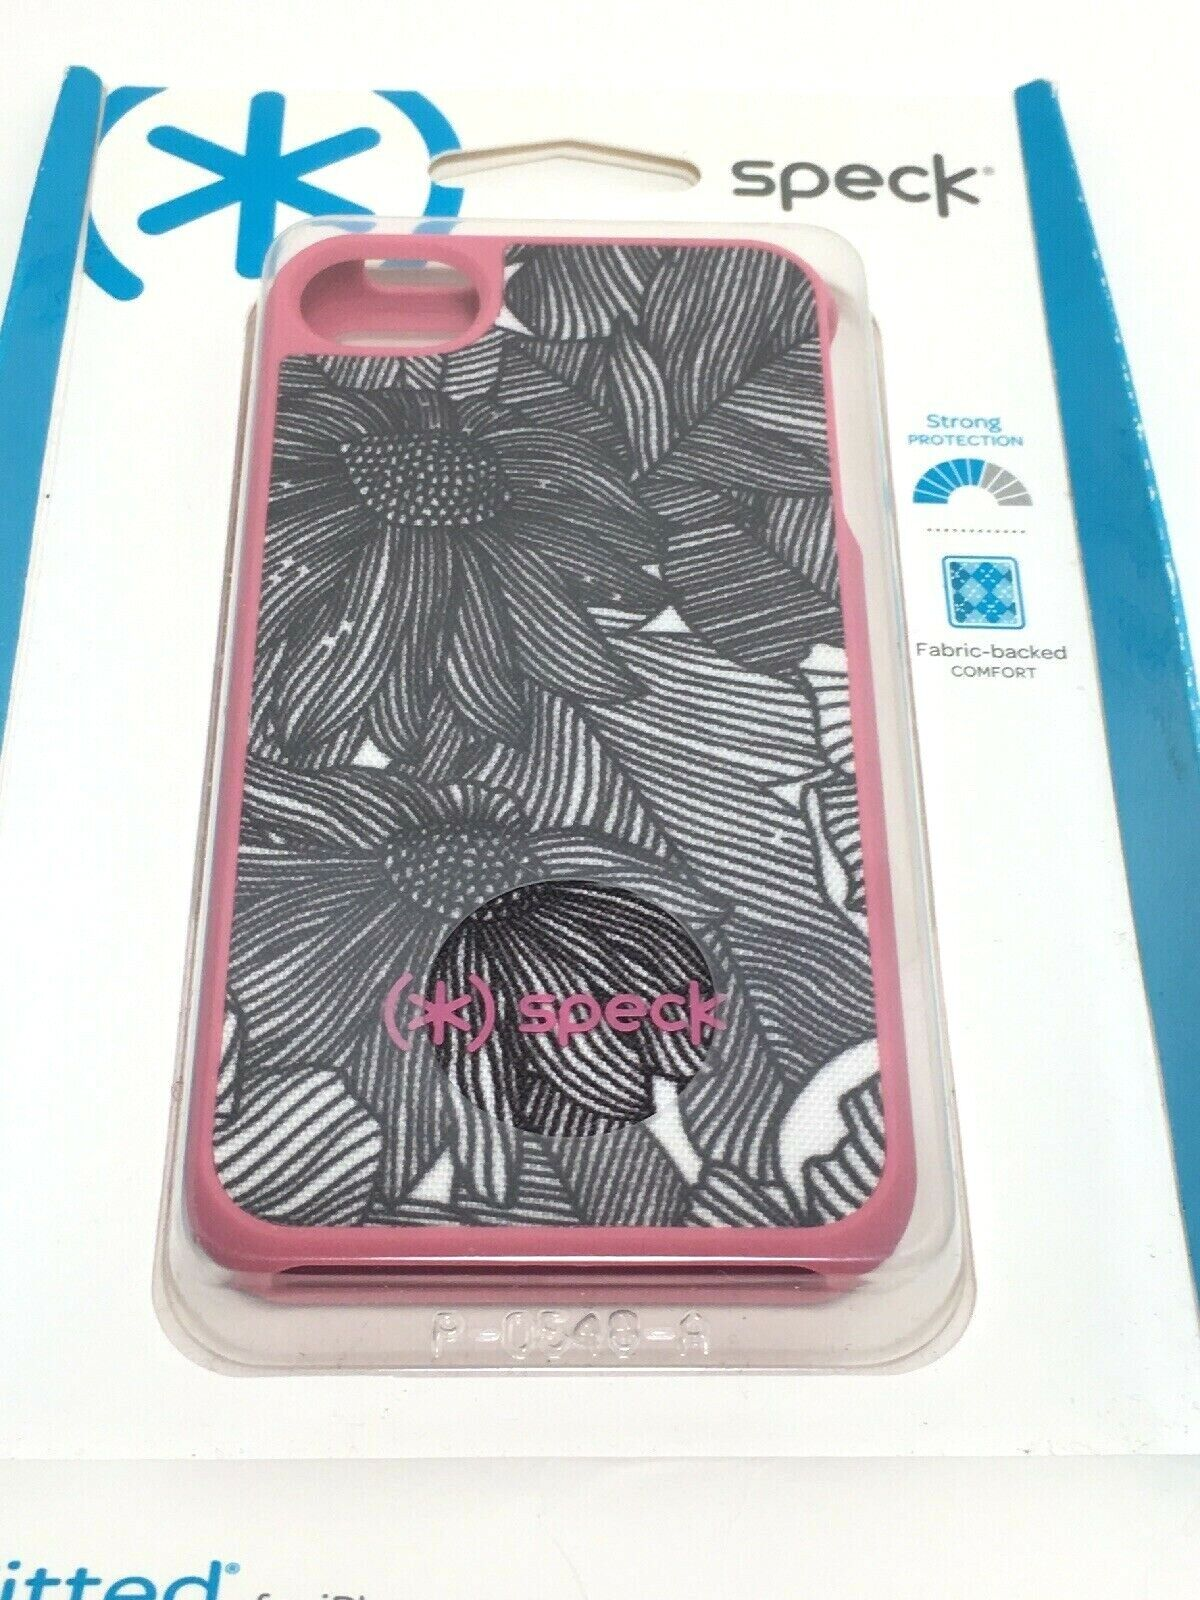 Speck Fitted iPhone Case 4/4S Pink Black White Floral Flower